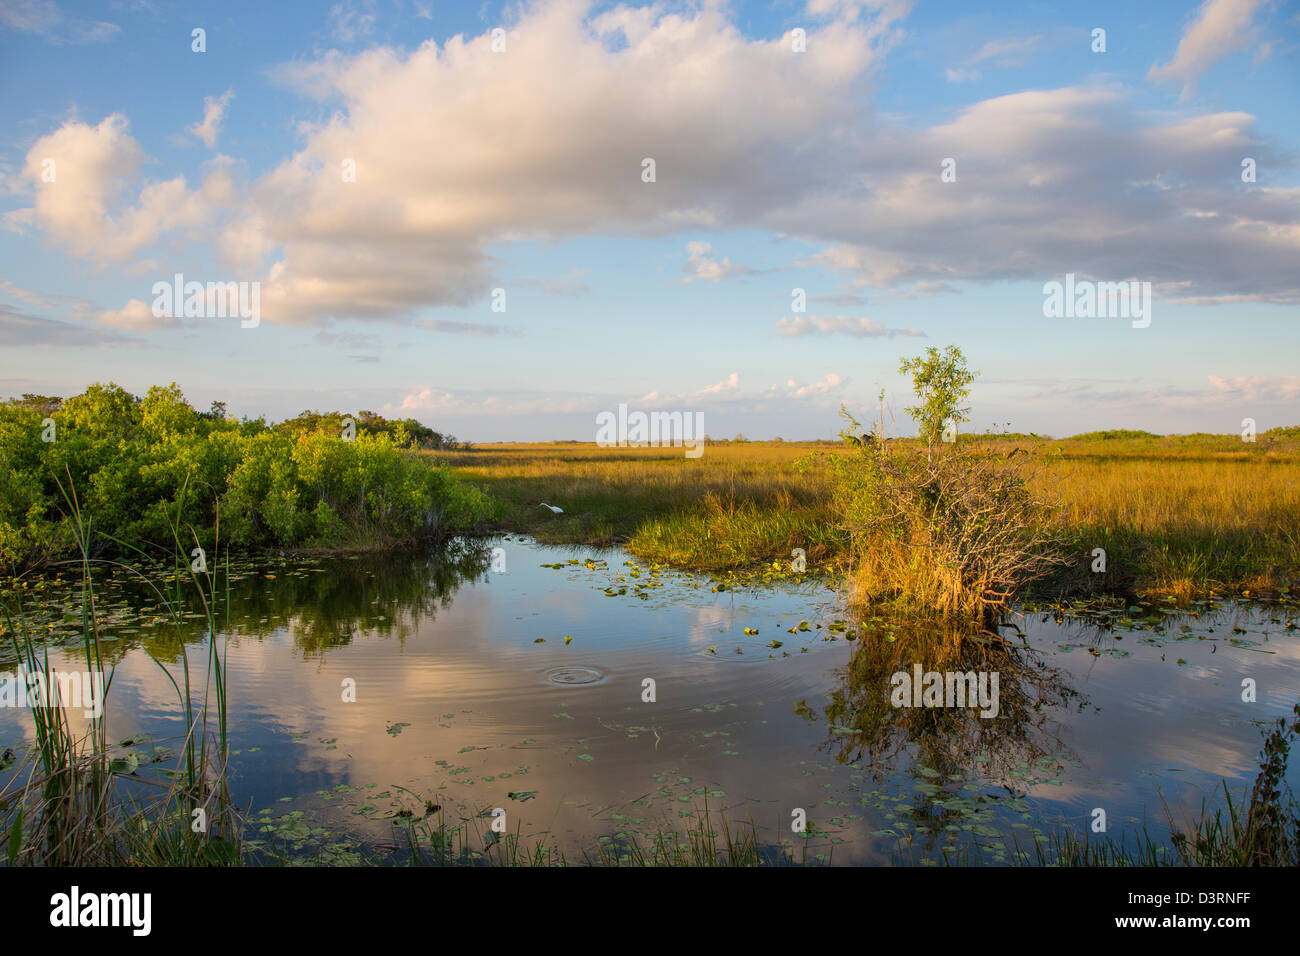 Anhinga Trail at the Royal Palm Visitor Center in Everglades National Park Florida - Stock Image